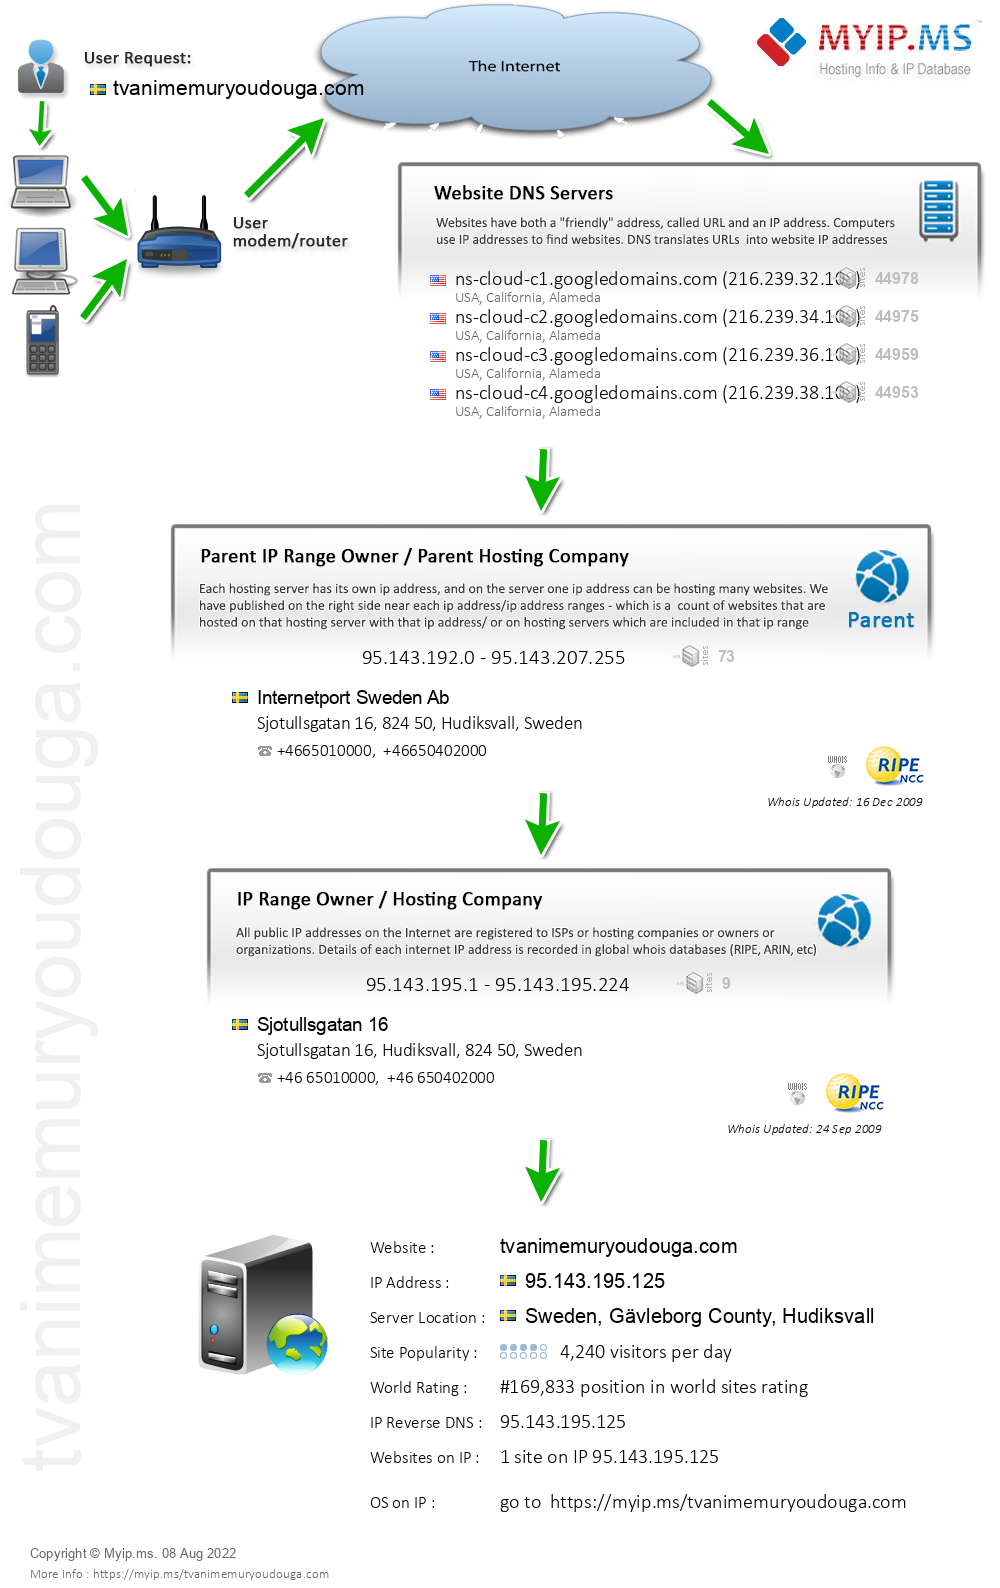 Tvanimemuryoudouga.com - Website Hosting Visual IP Diagram